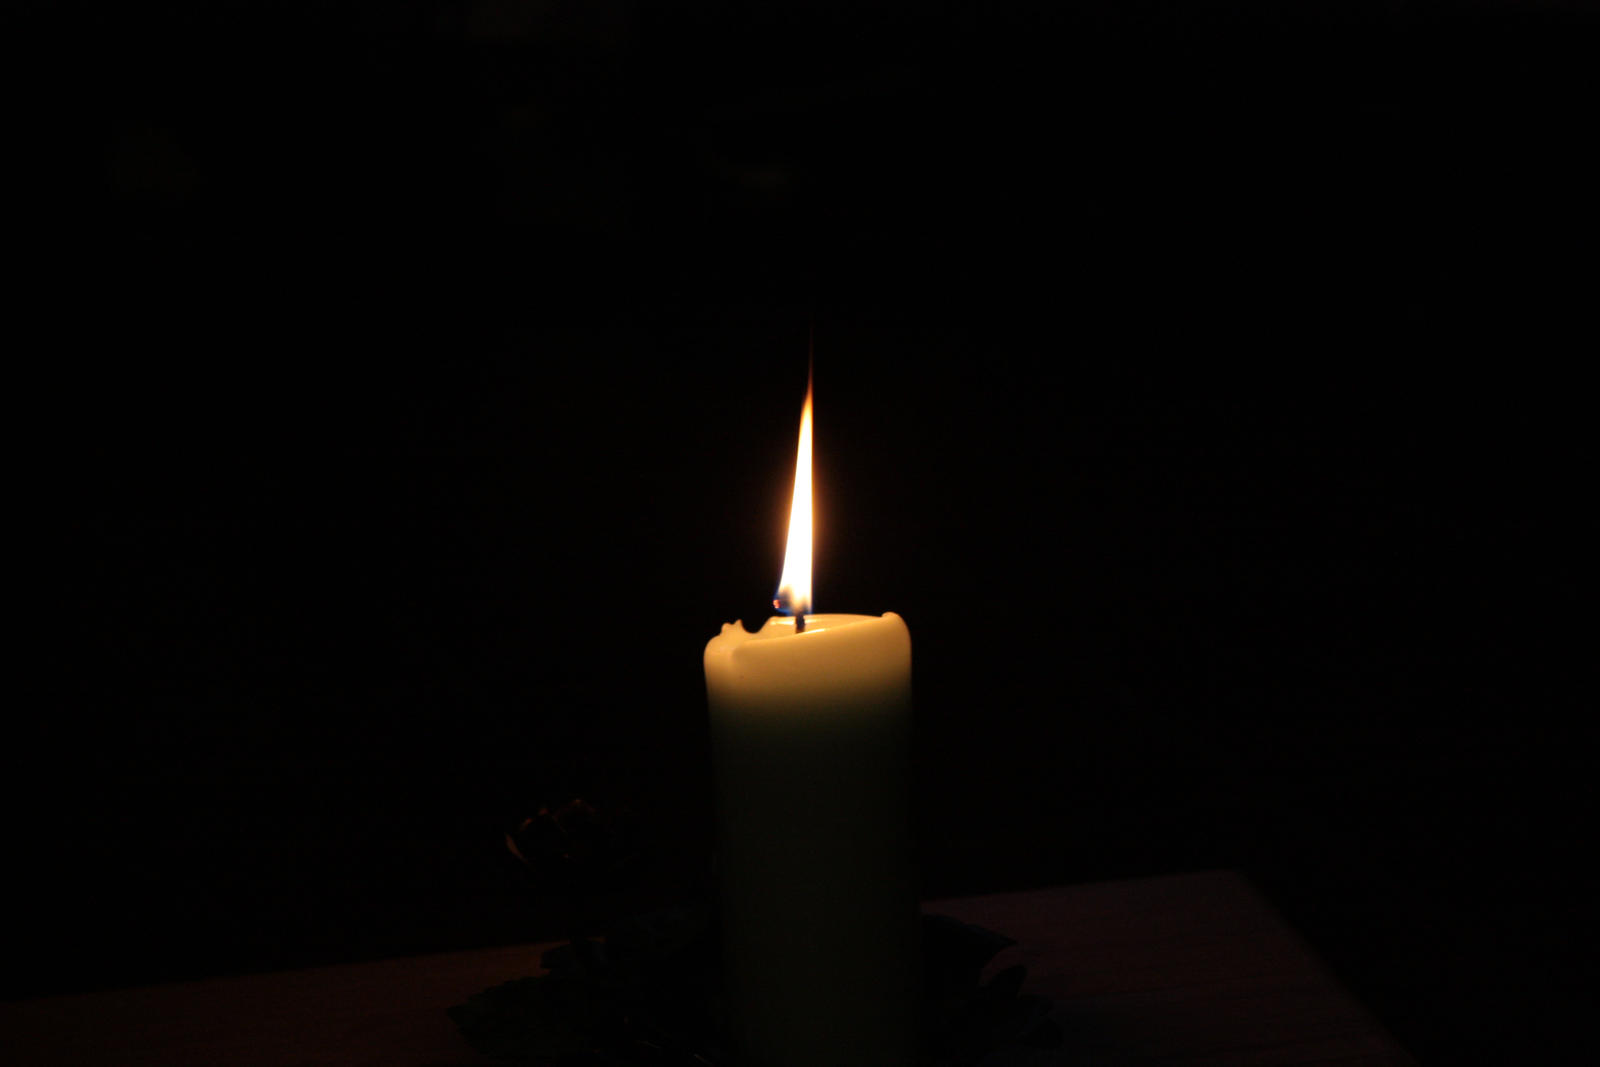 candle in the dark - photo #16